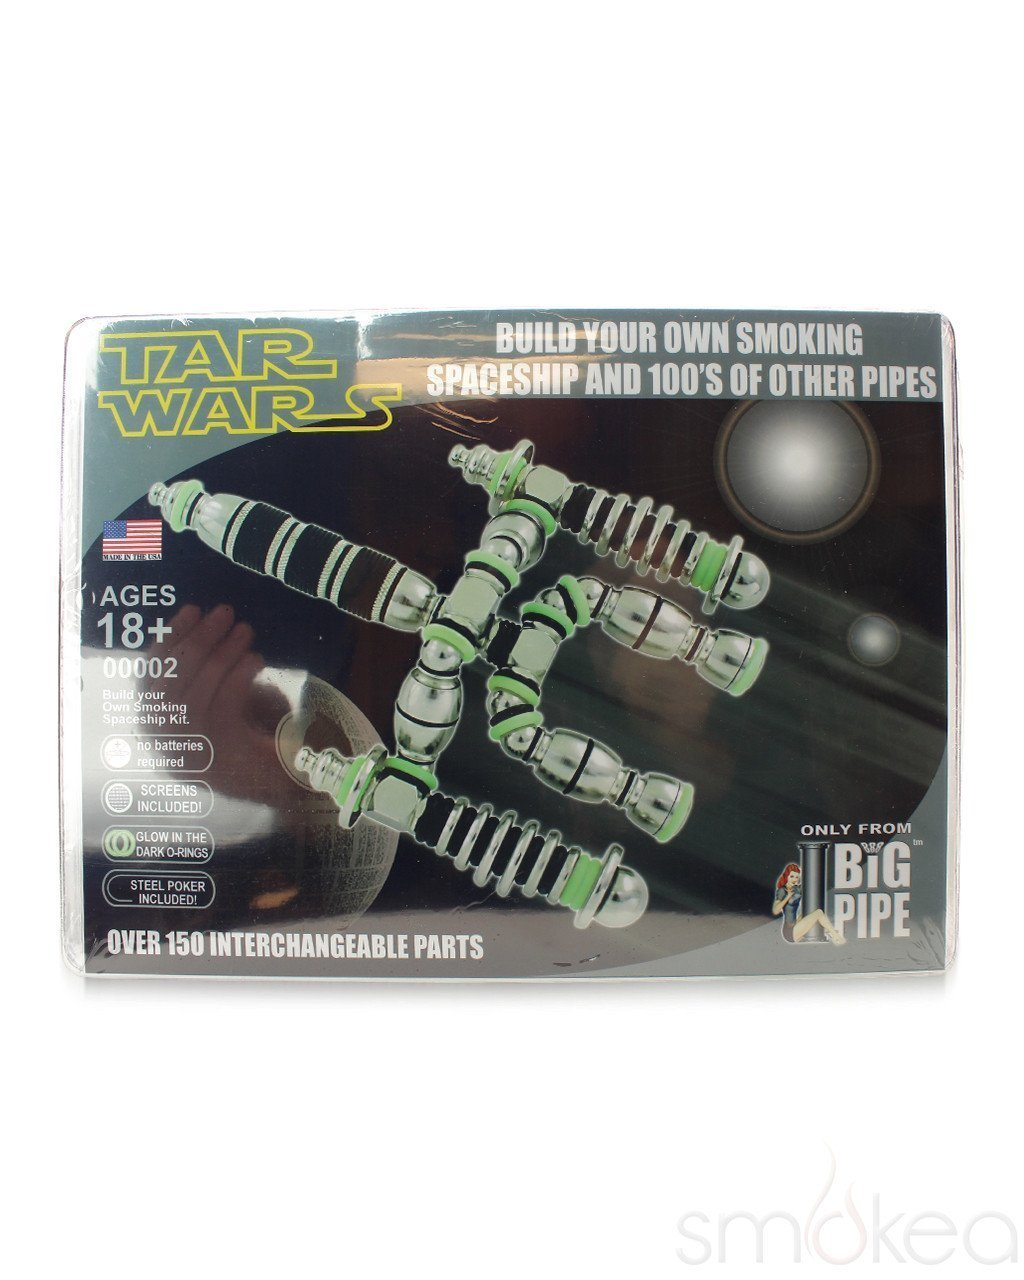 Tar Wars Metal Pipe Super Kit